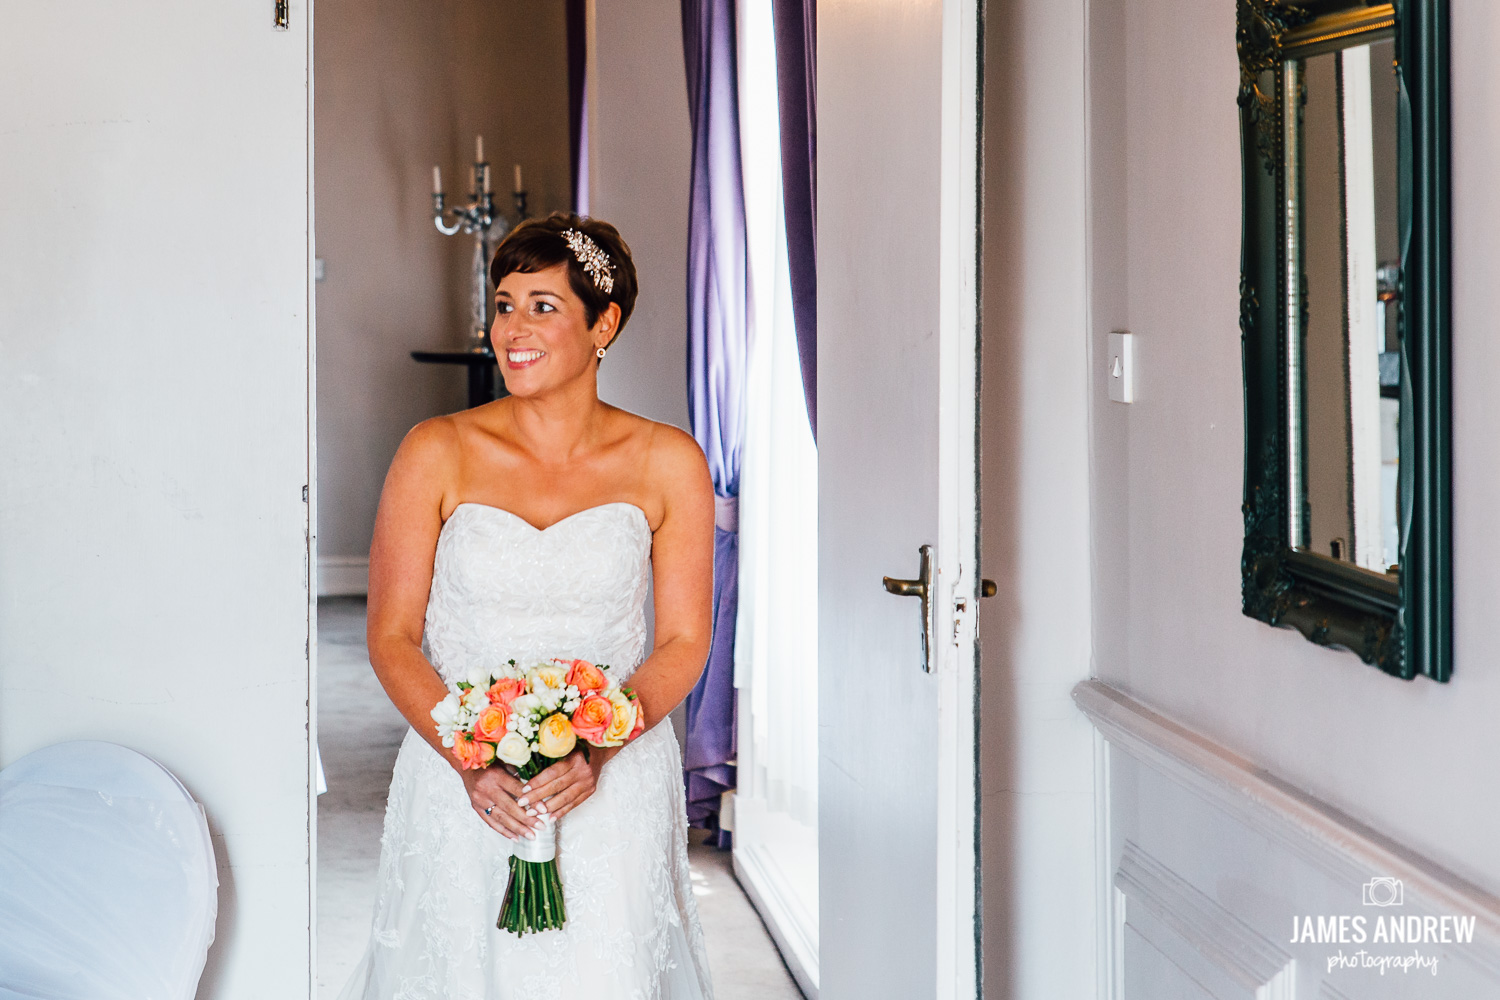 bride holding flowers walking in to ceremony room